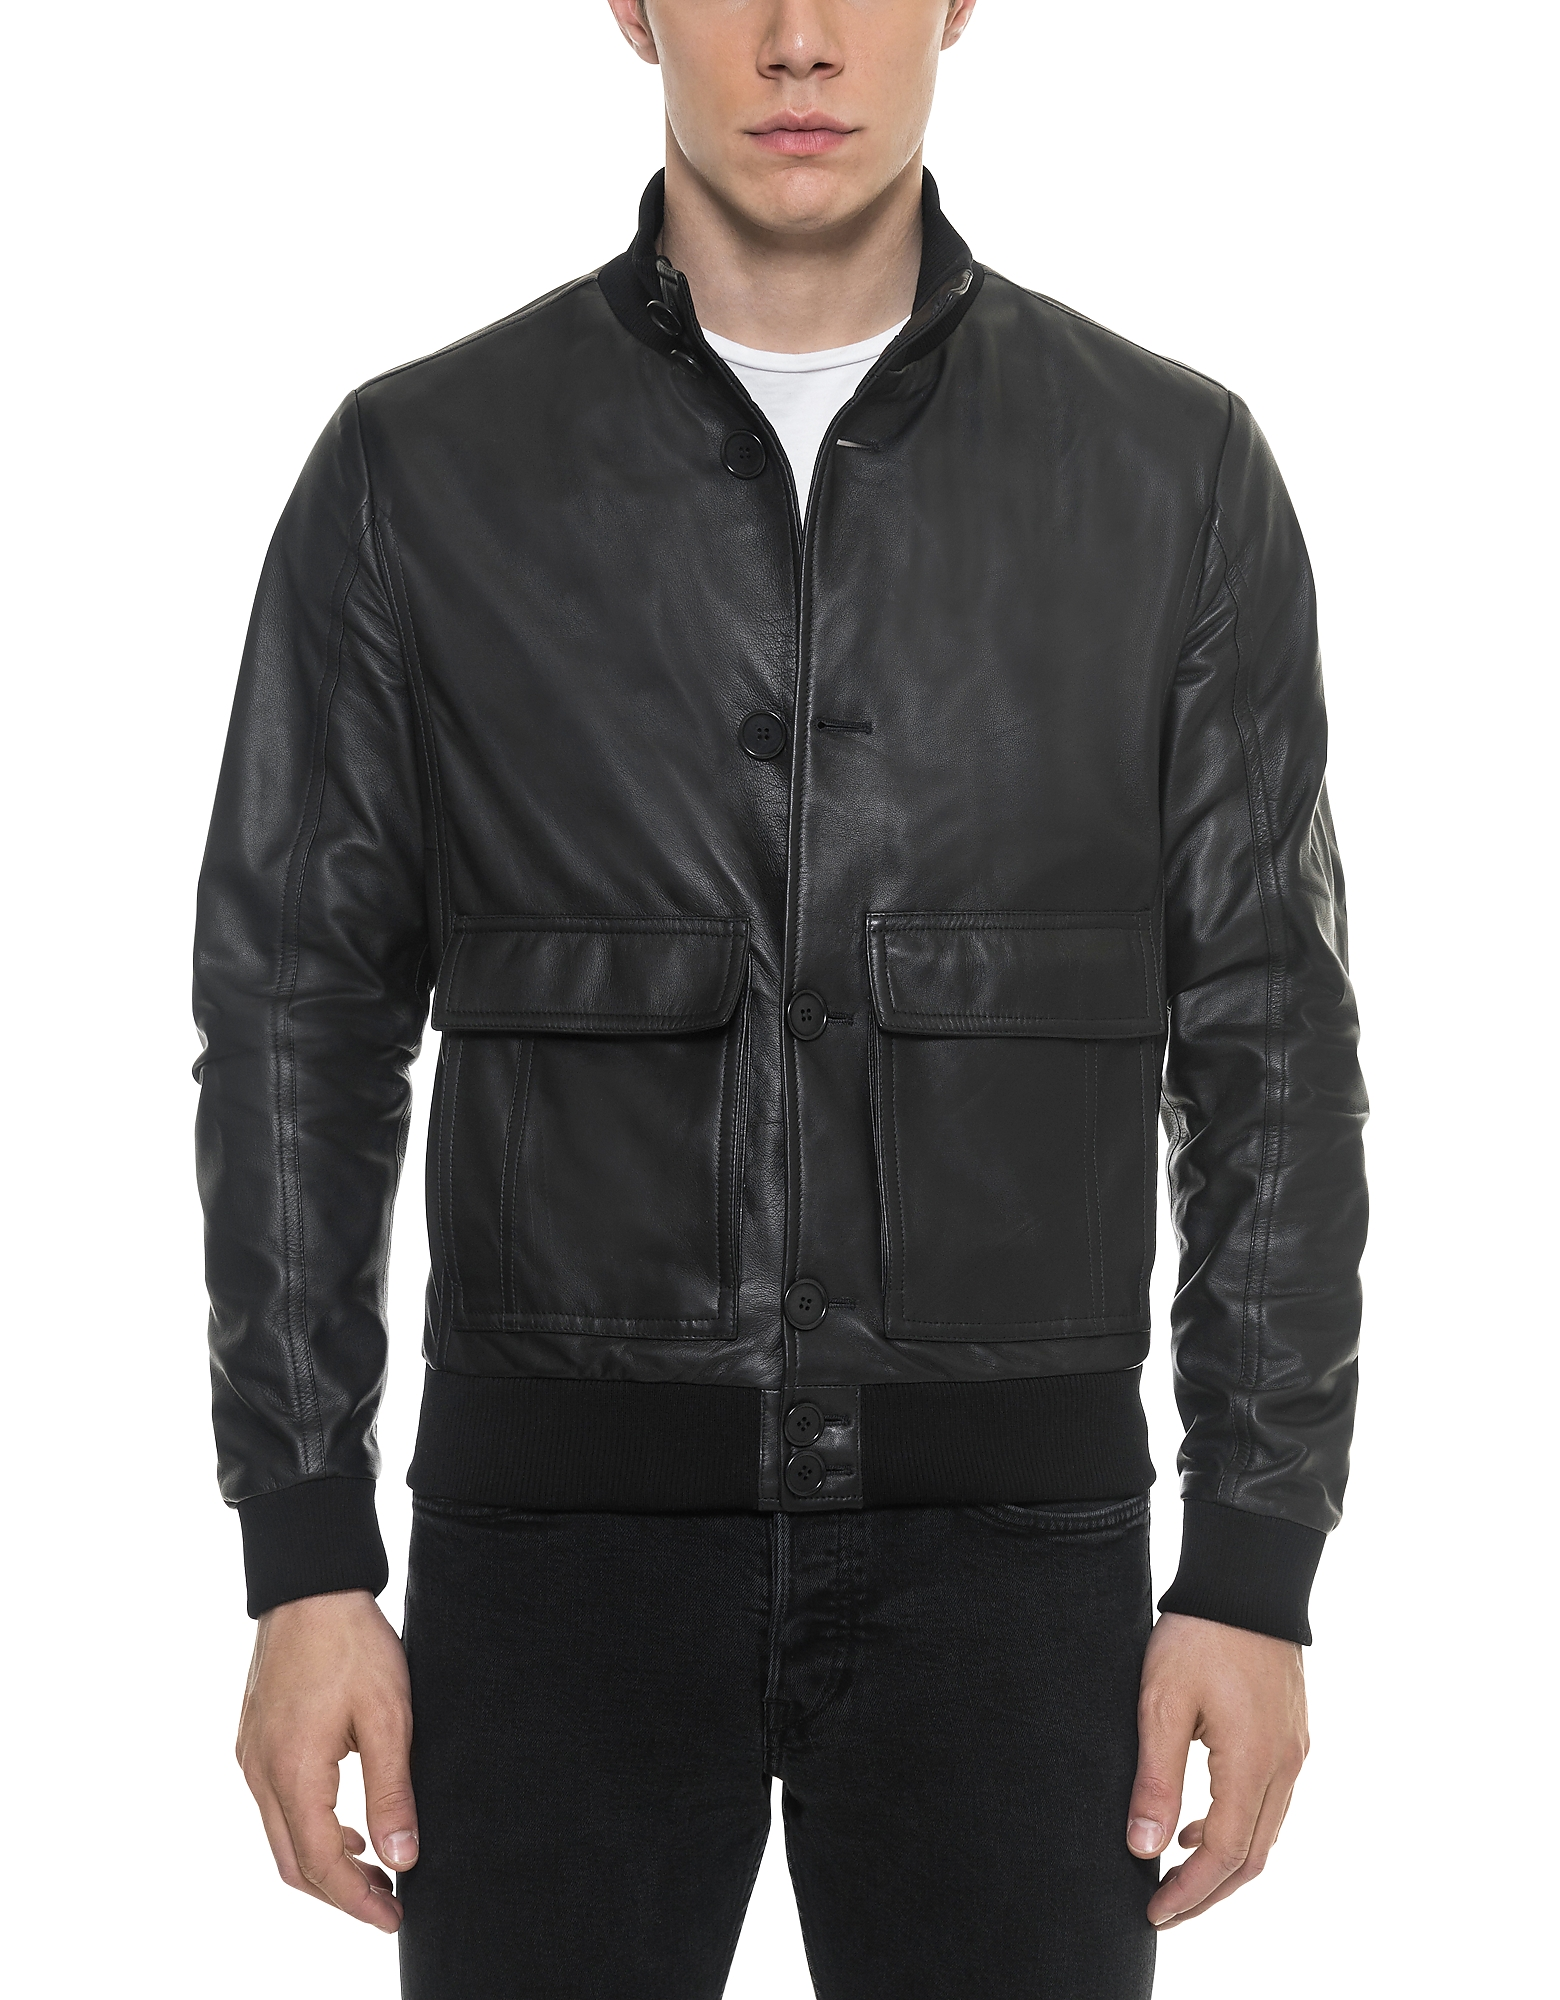 Forzieri Leather Jackets, Black Leather Men's Bomber Jacket